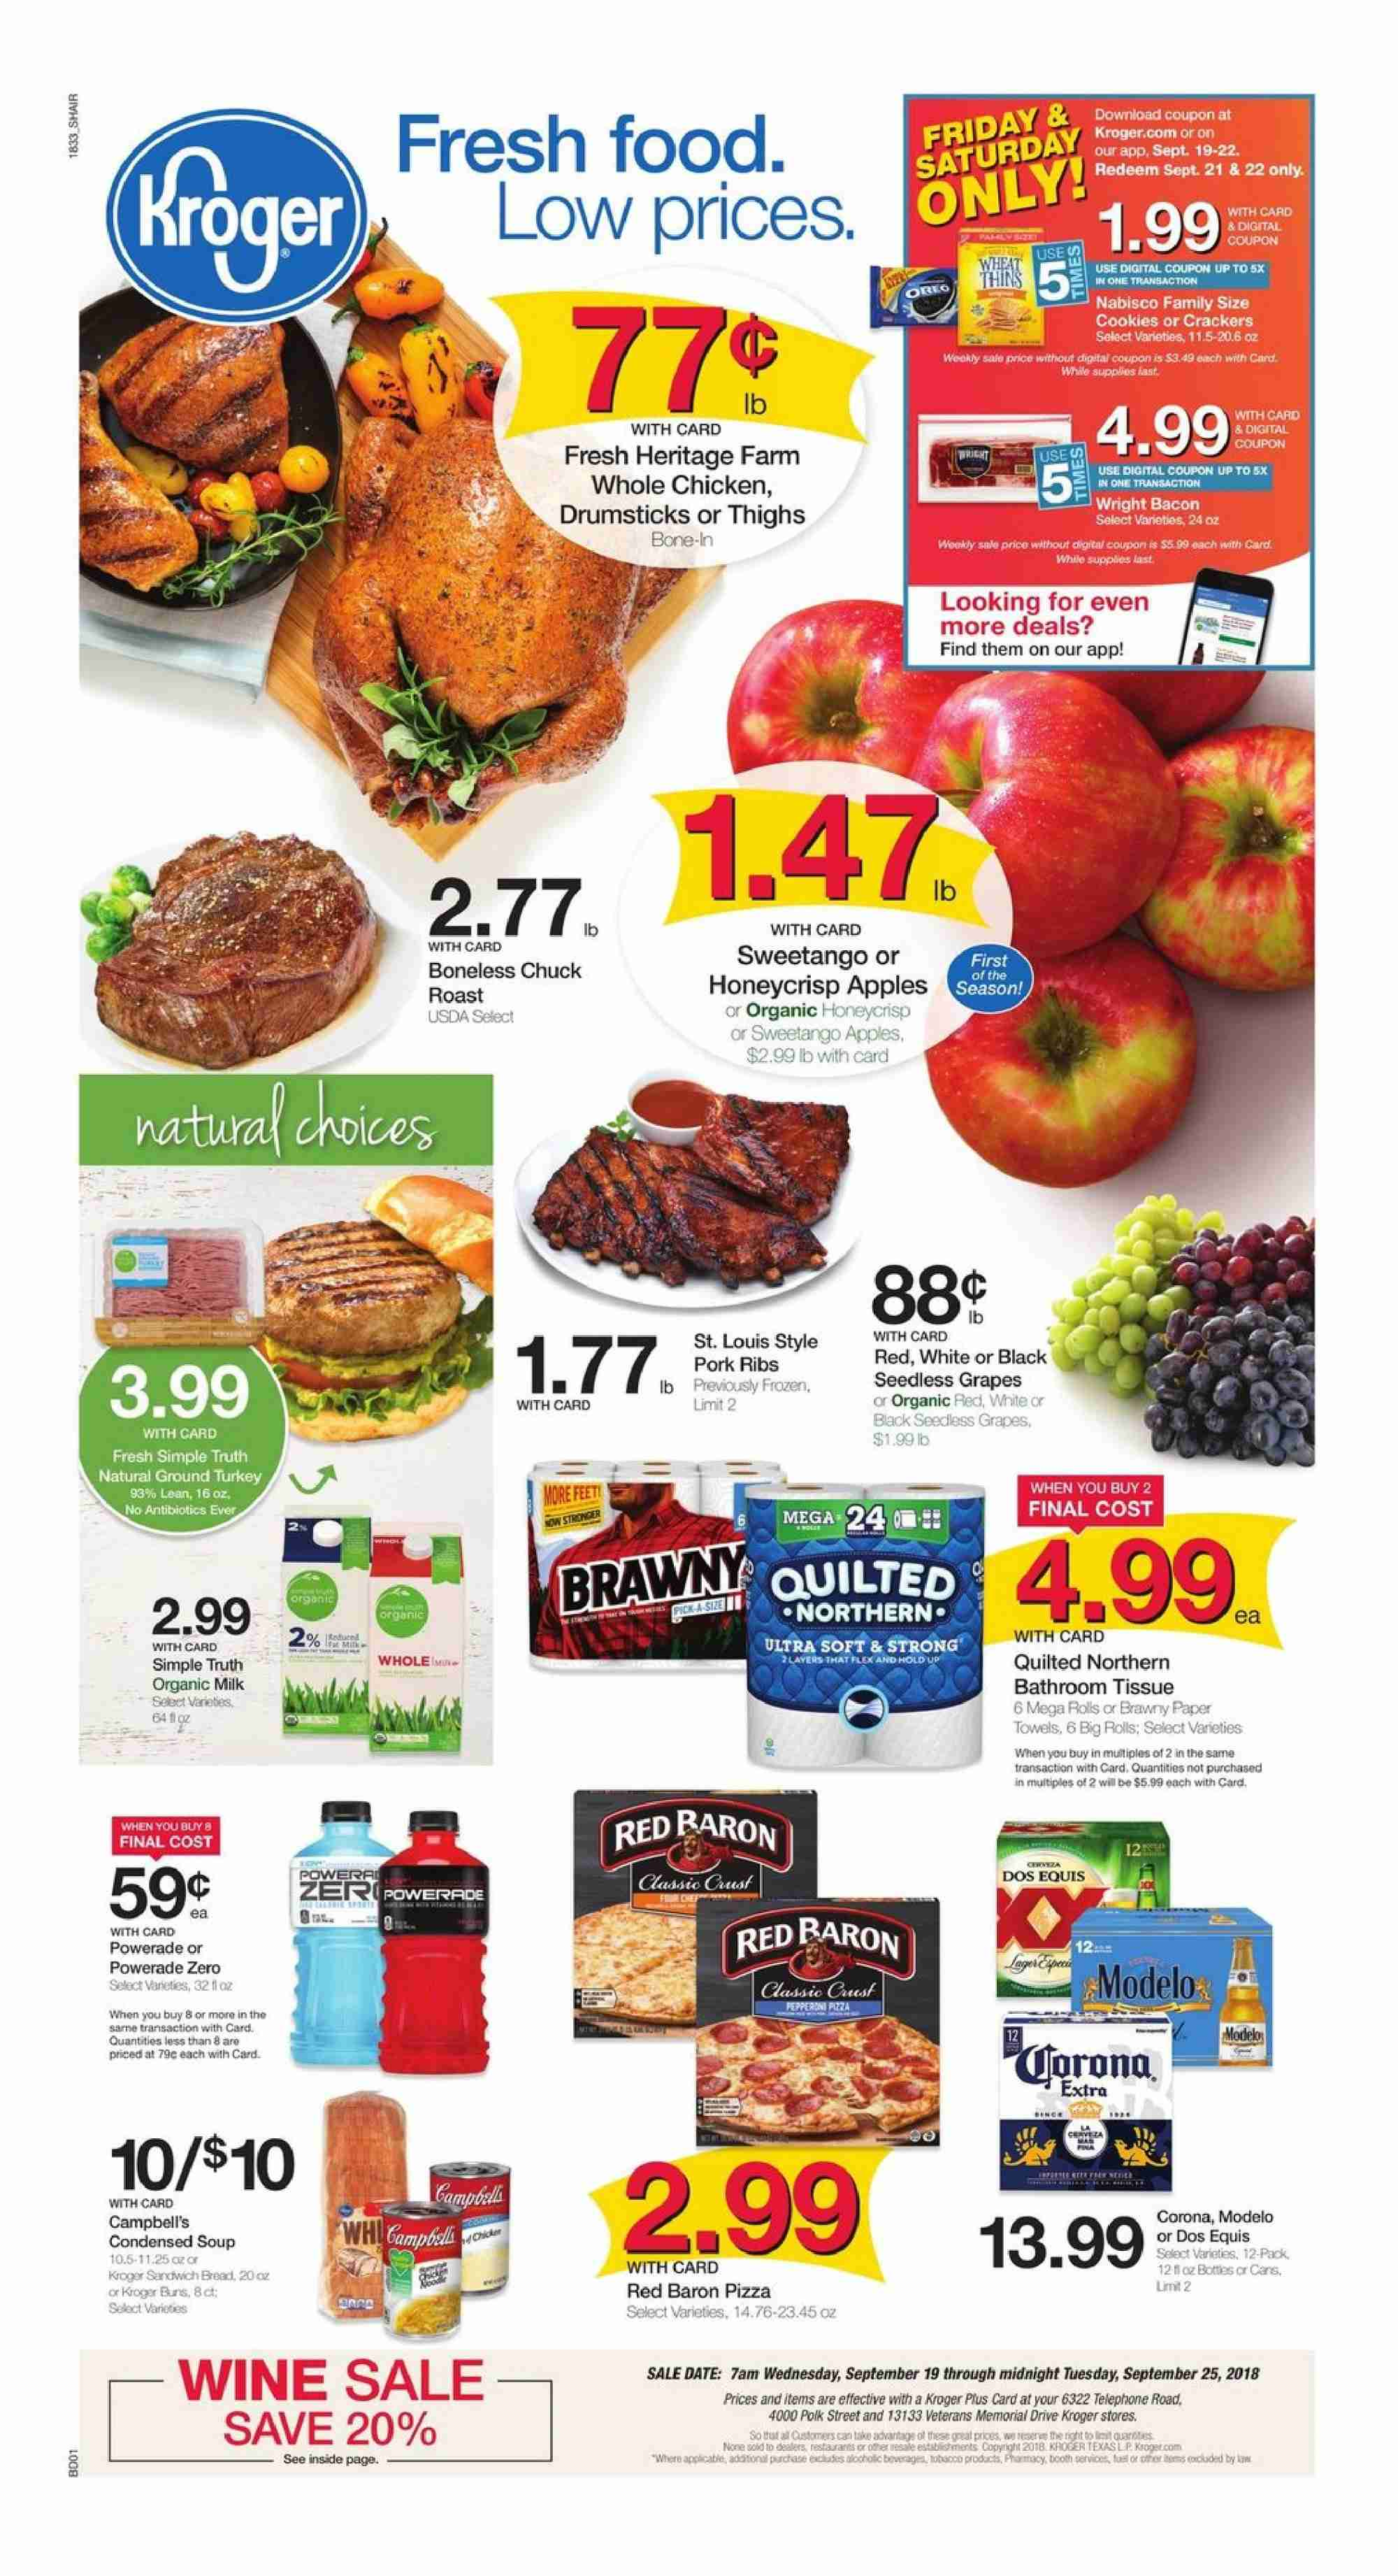 Kroger Flyer - 09.19.2018 - 09.25.2018 - Sales products - apples, bacon, bathroom, cookies, crackers, frozen, grapes, ground turkey, milk, seedless grapes, towel, turkey, whole chicken, pizza, polk, pork meat, pork ribs, chicken, paper towel, organic, organic milk. Page 1.